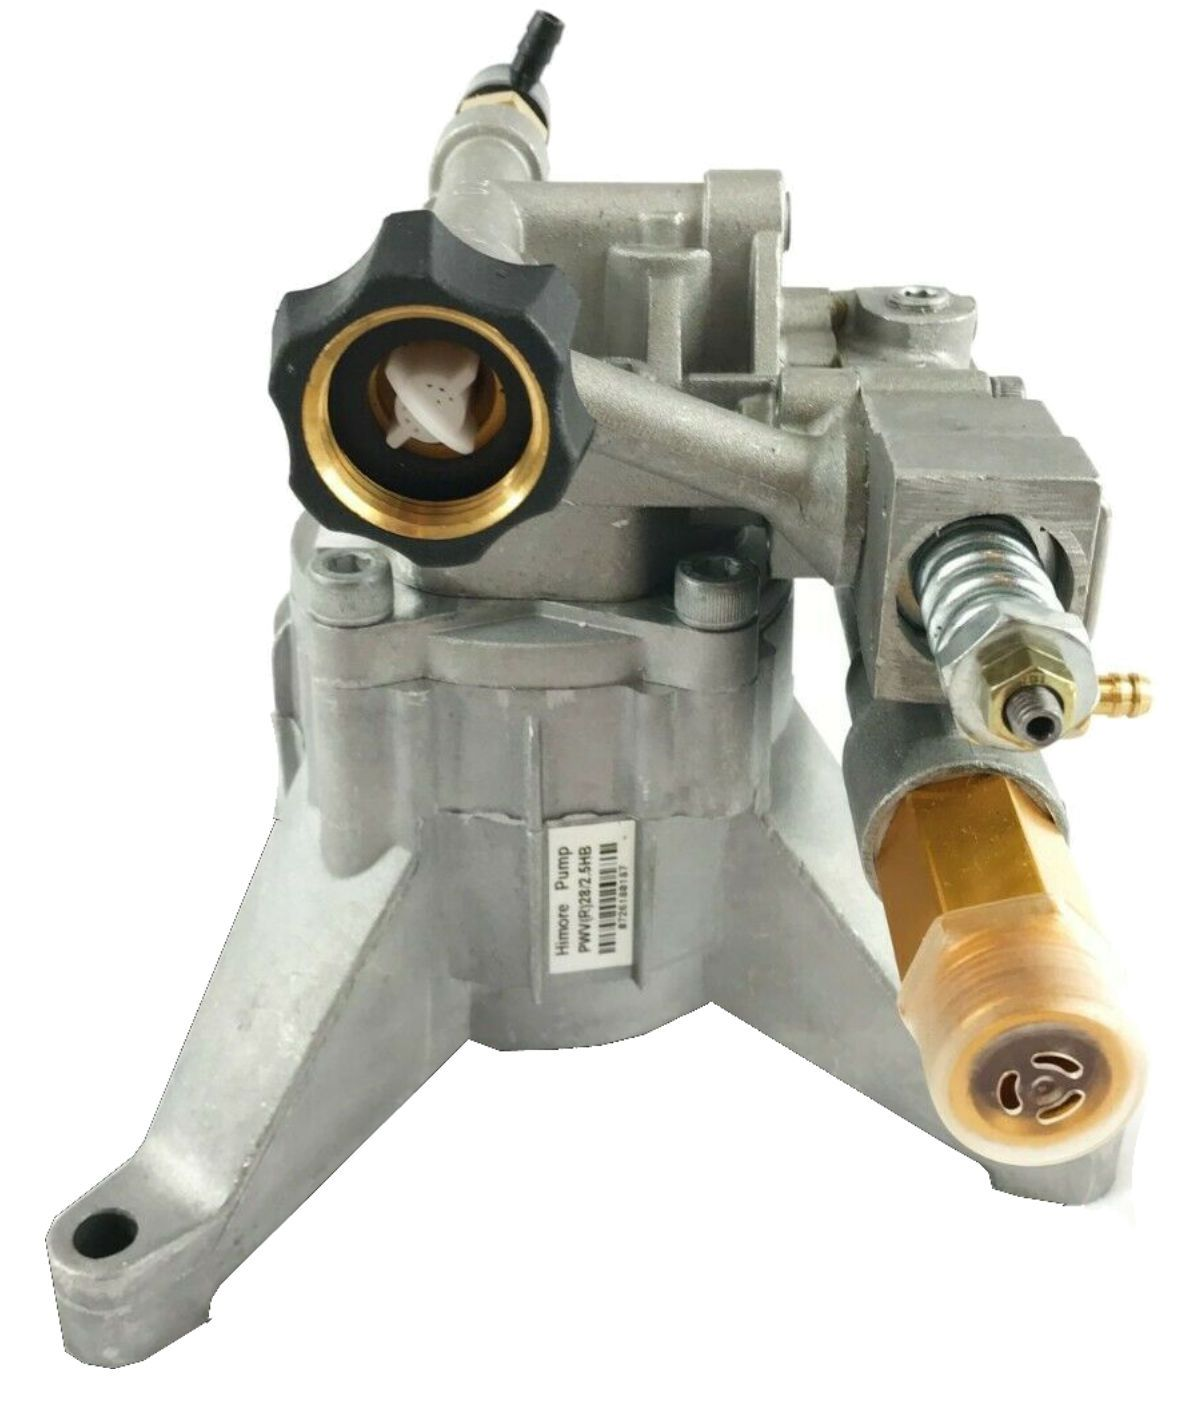 2700 PSI PRESSURE WASHER WATER PUMP fits Generac 580.768342 580.768110 - AE-Power